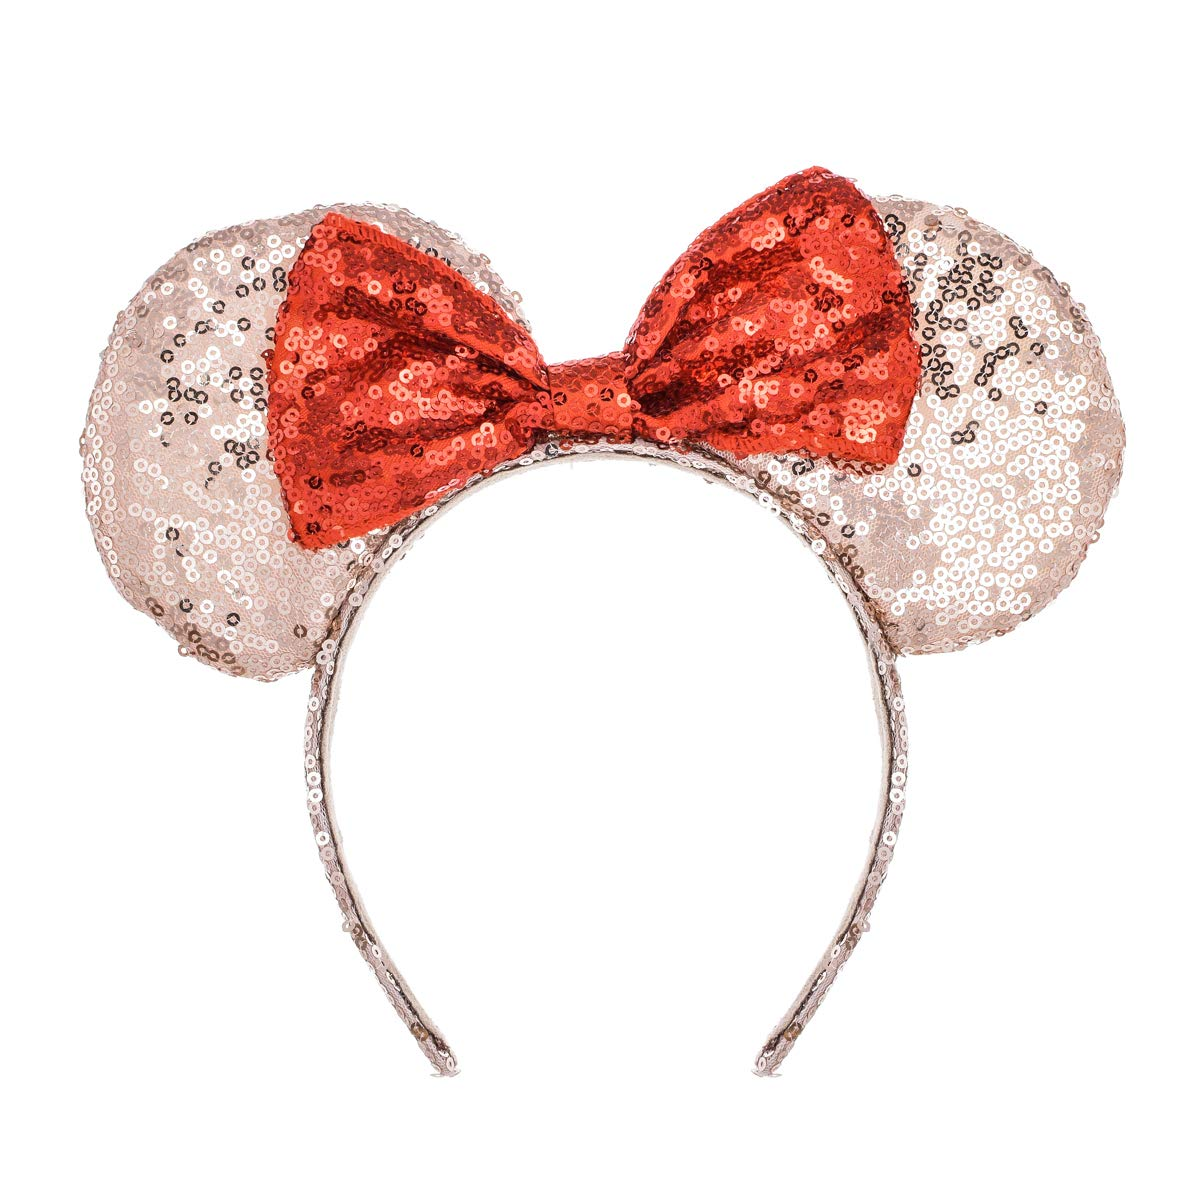 A Miaow Sequin Black Mouse Ears Headband MM Glitter Hair Clasp Adults Women Girls Butterfly Hair Hoop Birthday Party Holiday Park Photo Supply (Champagne and Red)